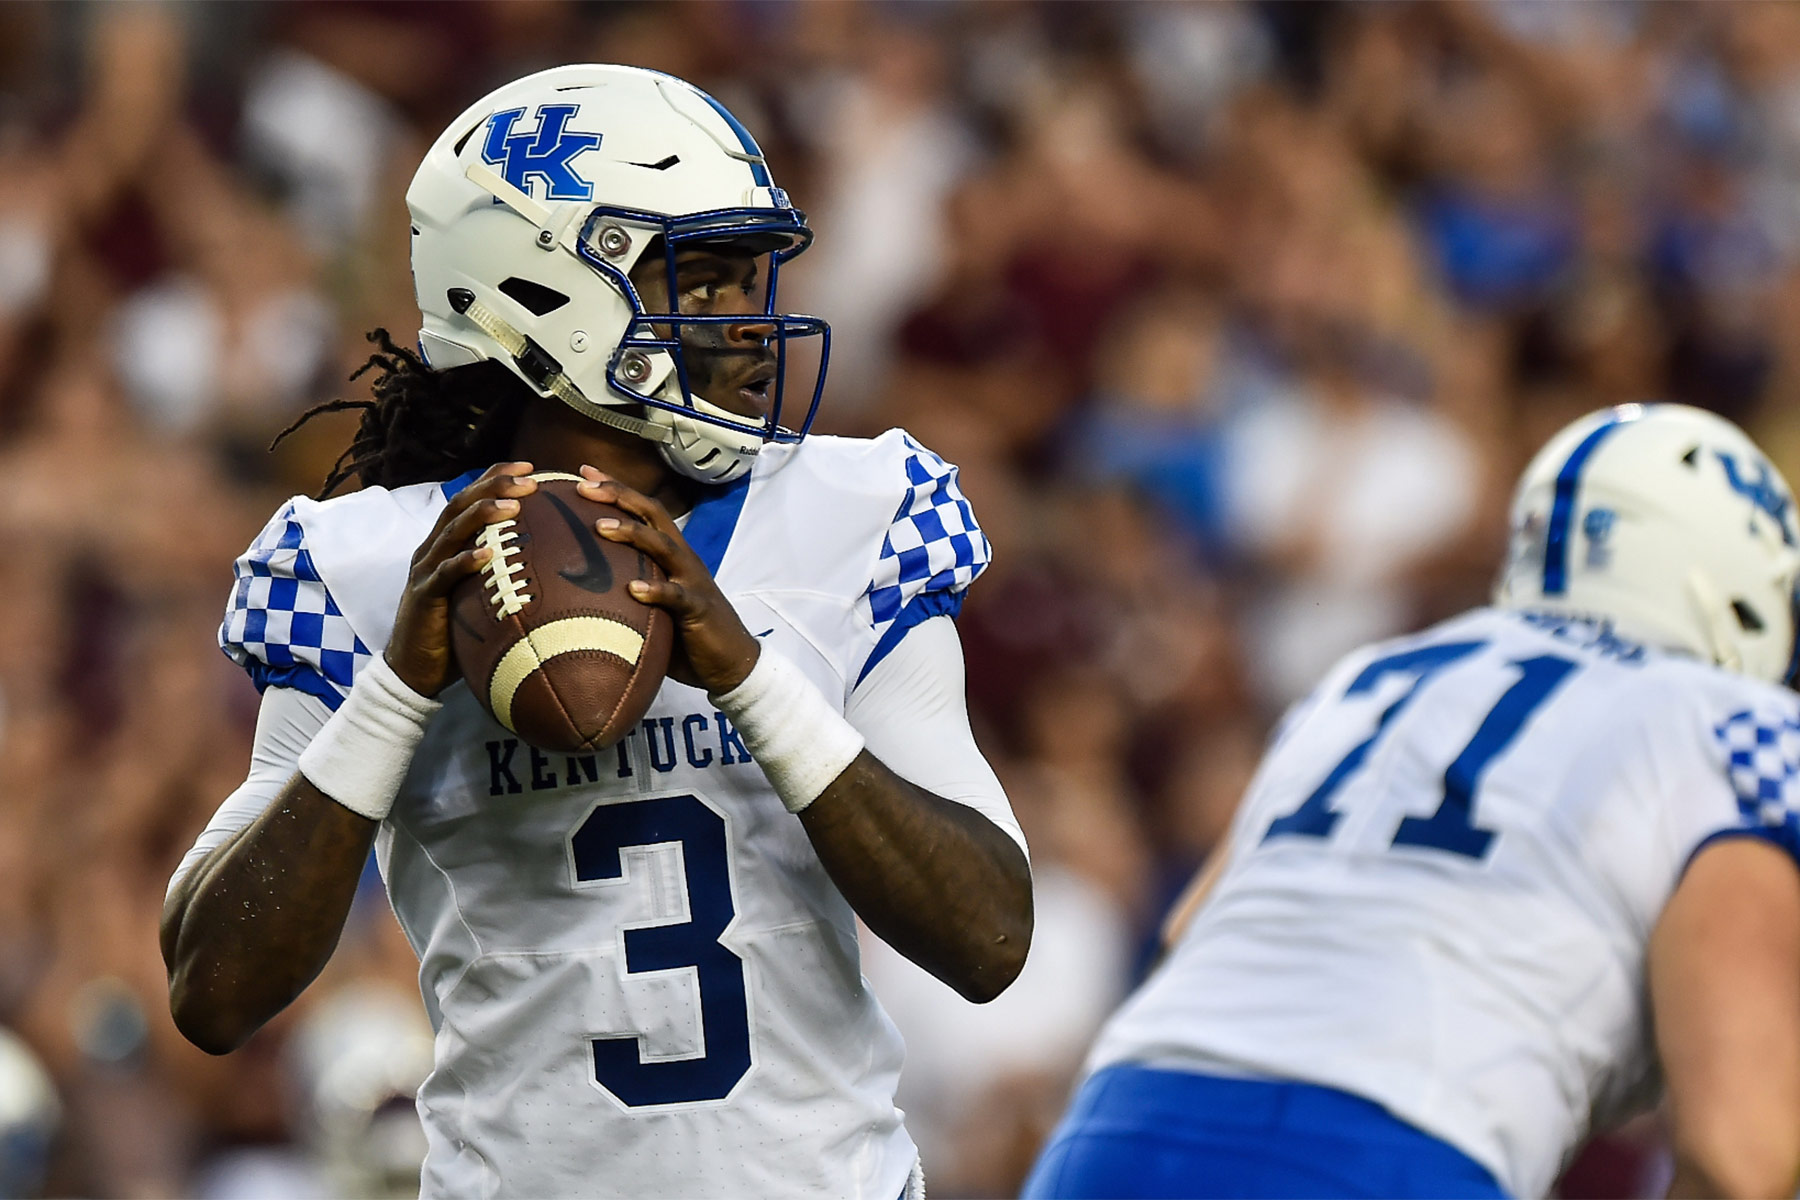 An action shot of Terry Wilson, a young, athletic Black man dressed in his football uniform and helmet, preparing to throw a football during a University of Kentucky game.